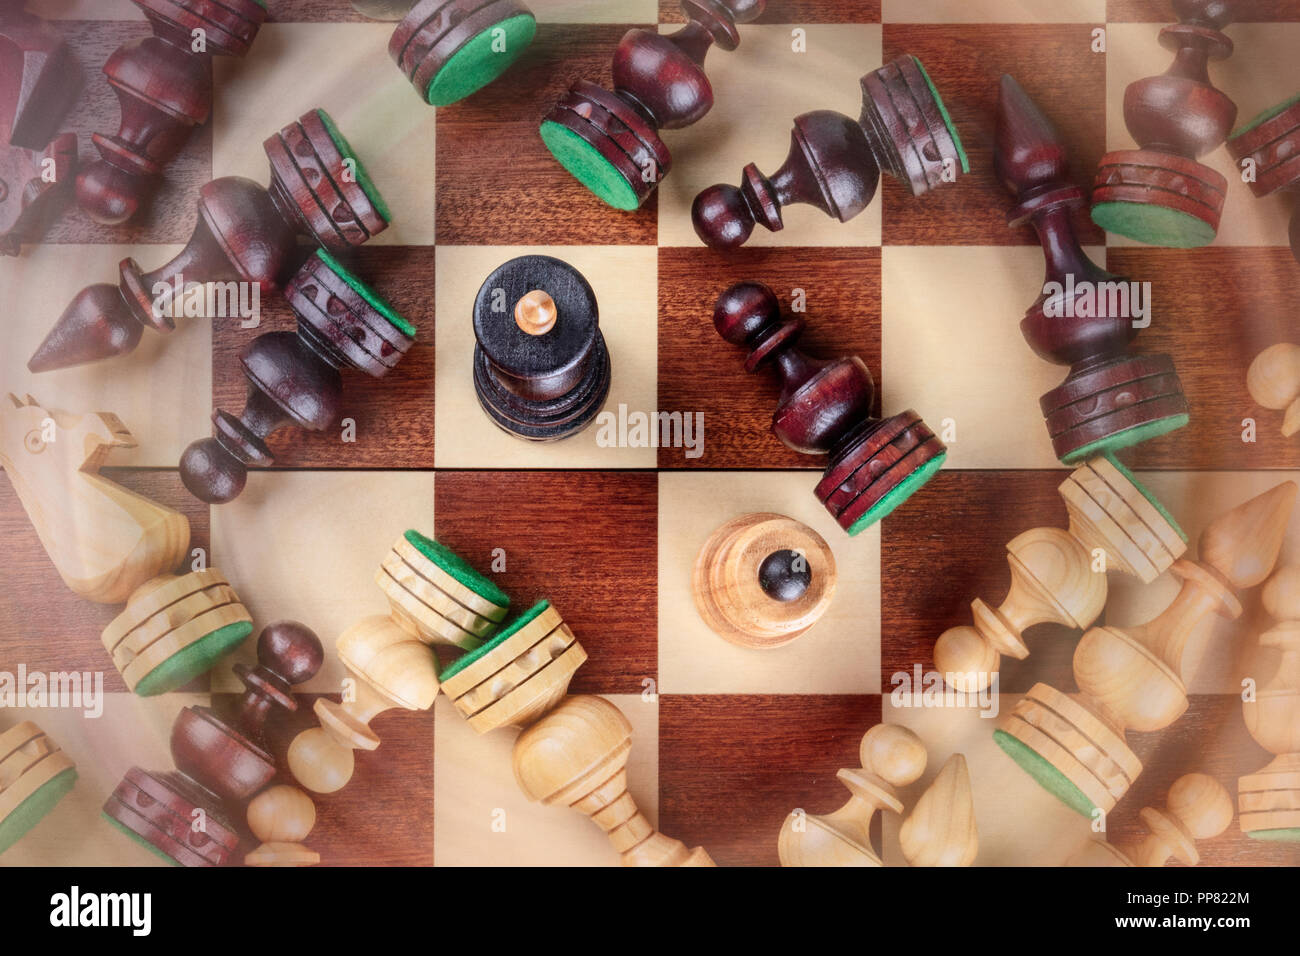 An overhead photo of a checkmate situation in chess with nearly all the pieces fallen on the chessboard, with blurred motion - Stock Image